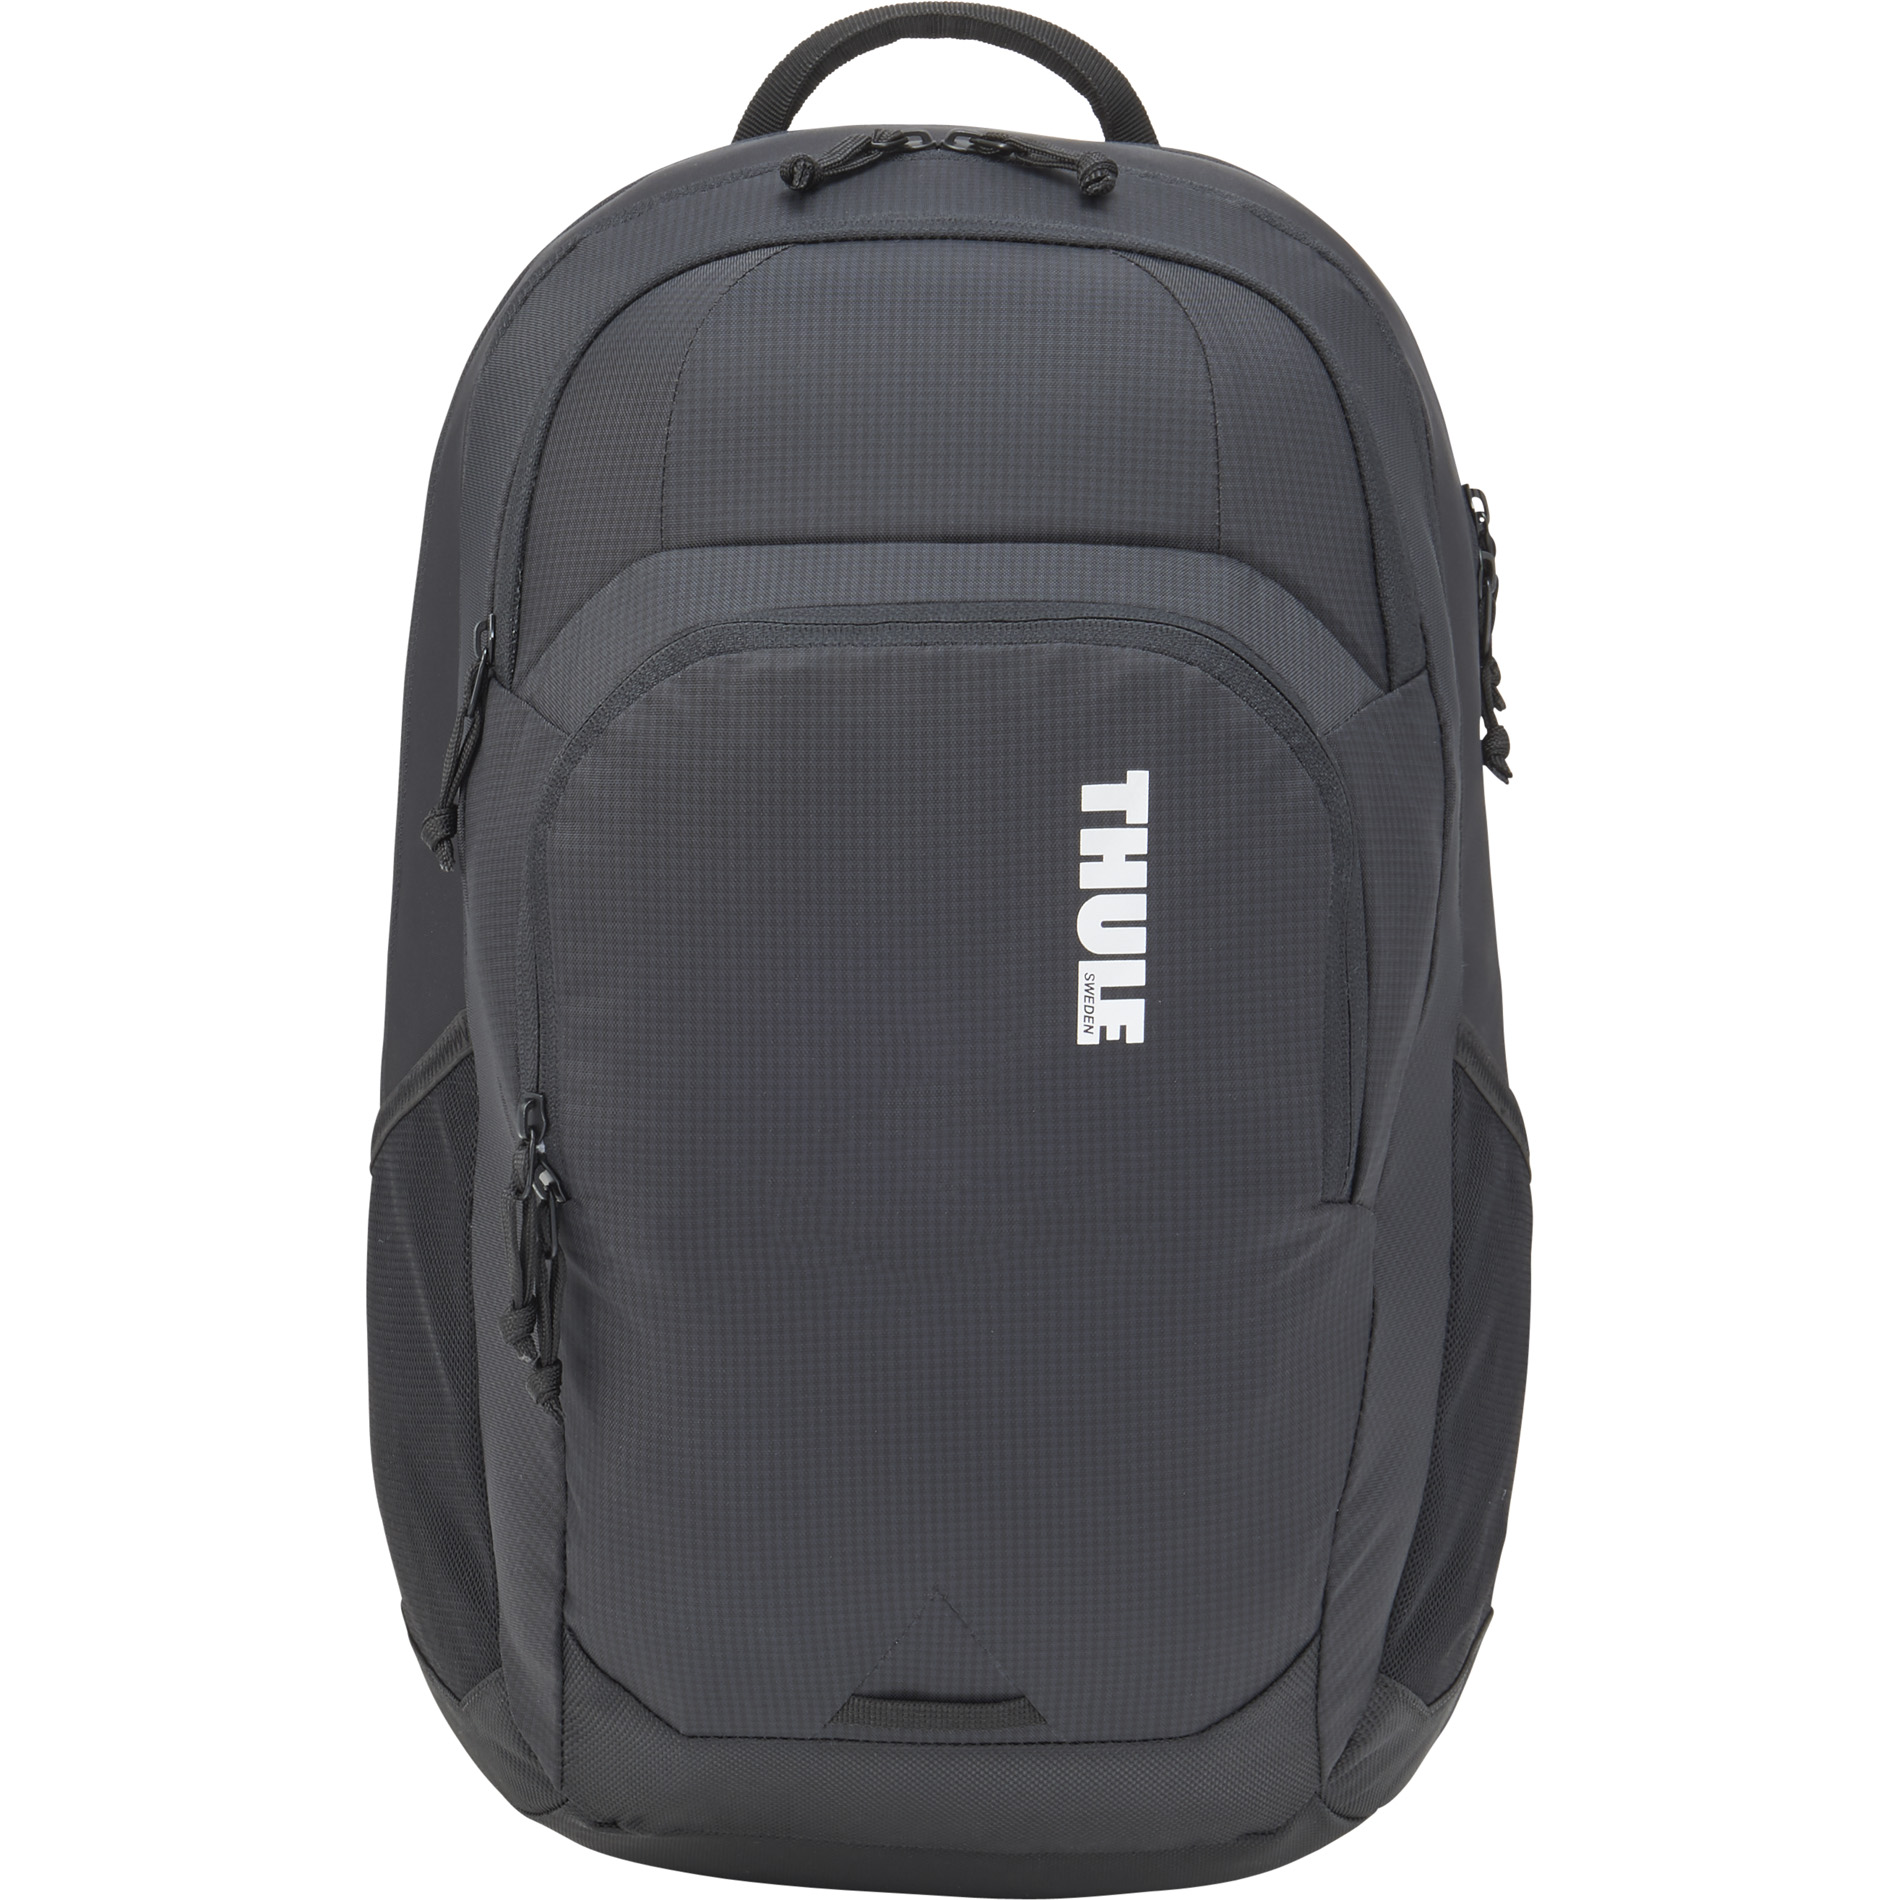 "Thule 9020-37 - Chronical 15"" Computer Backpack"